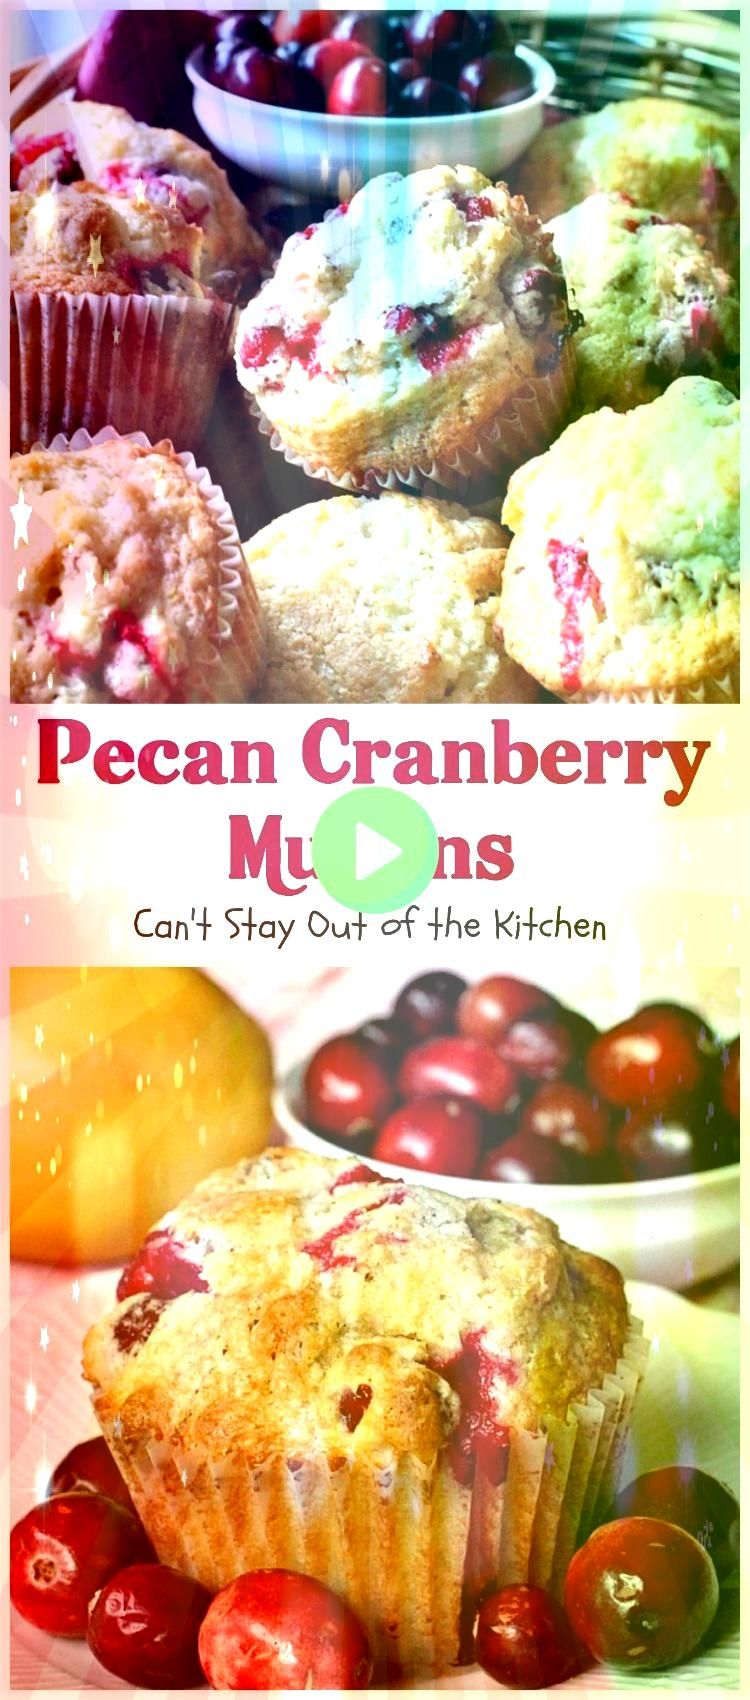 Cranberry Muffins  Cant Stay Out of the Kitchen  these scrumptious are filled with and They make such a great treat for a when cranberries are easily obtainable We love t...